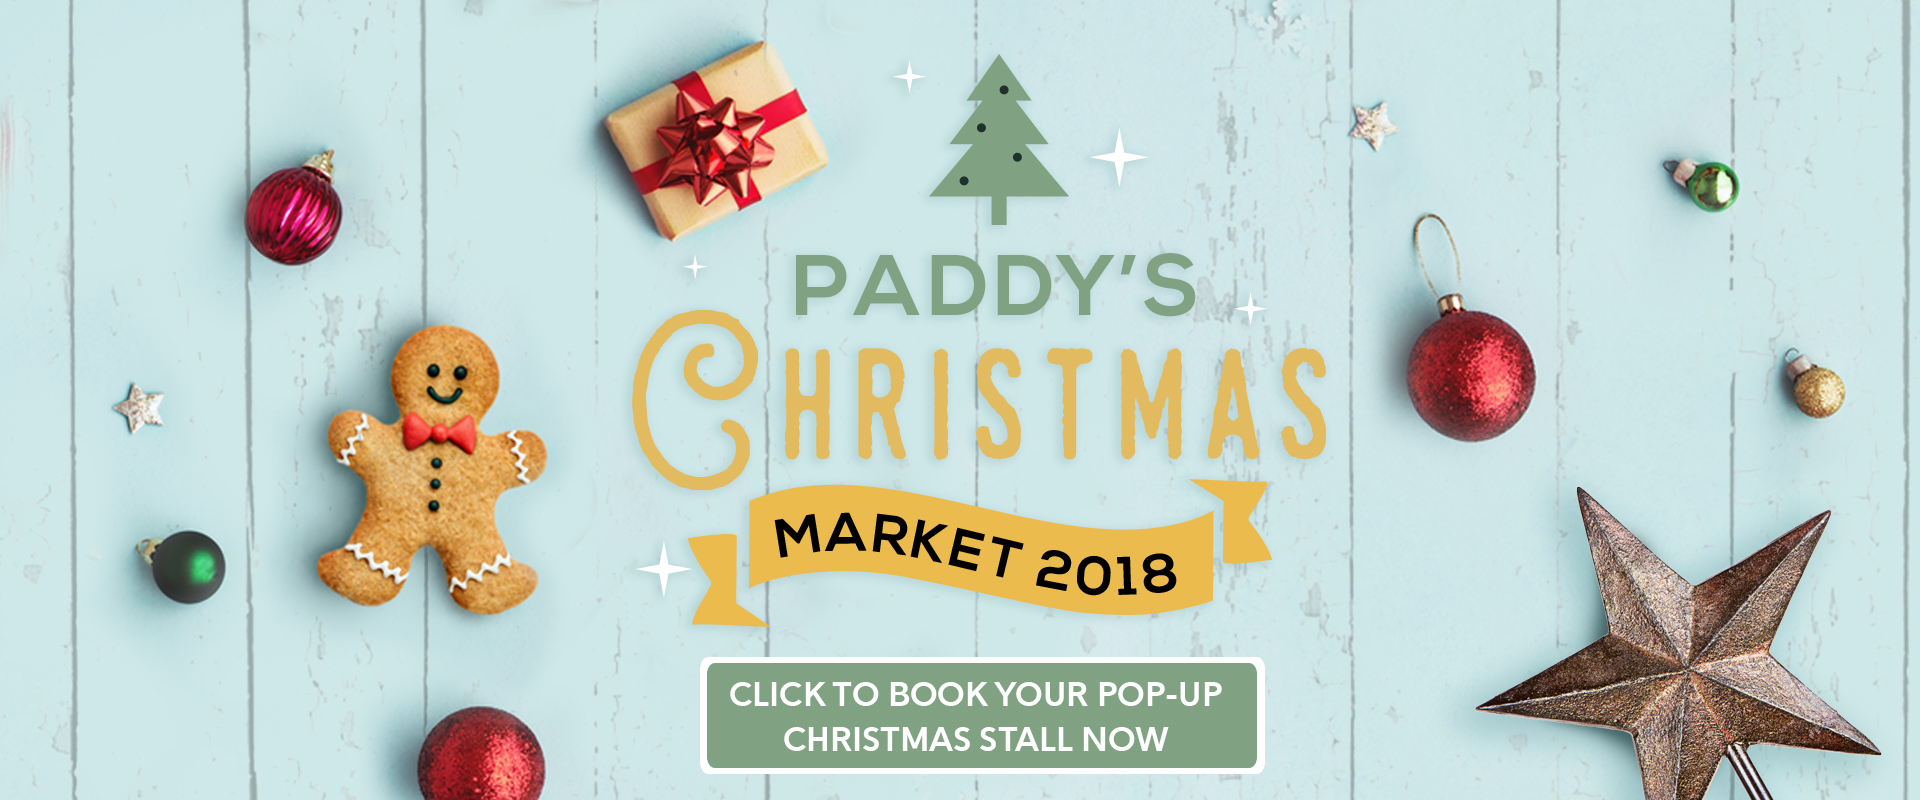 Paddy's Christmas Market 2018